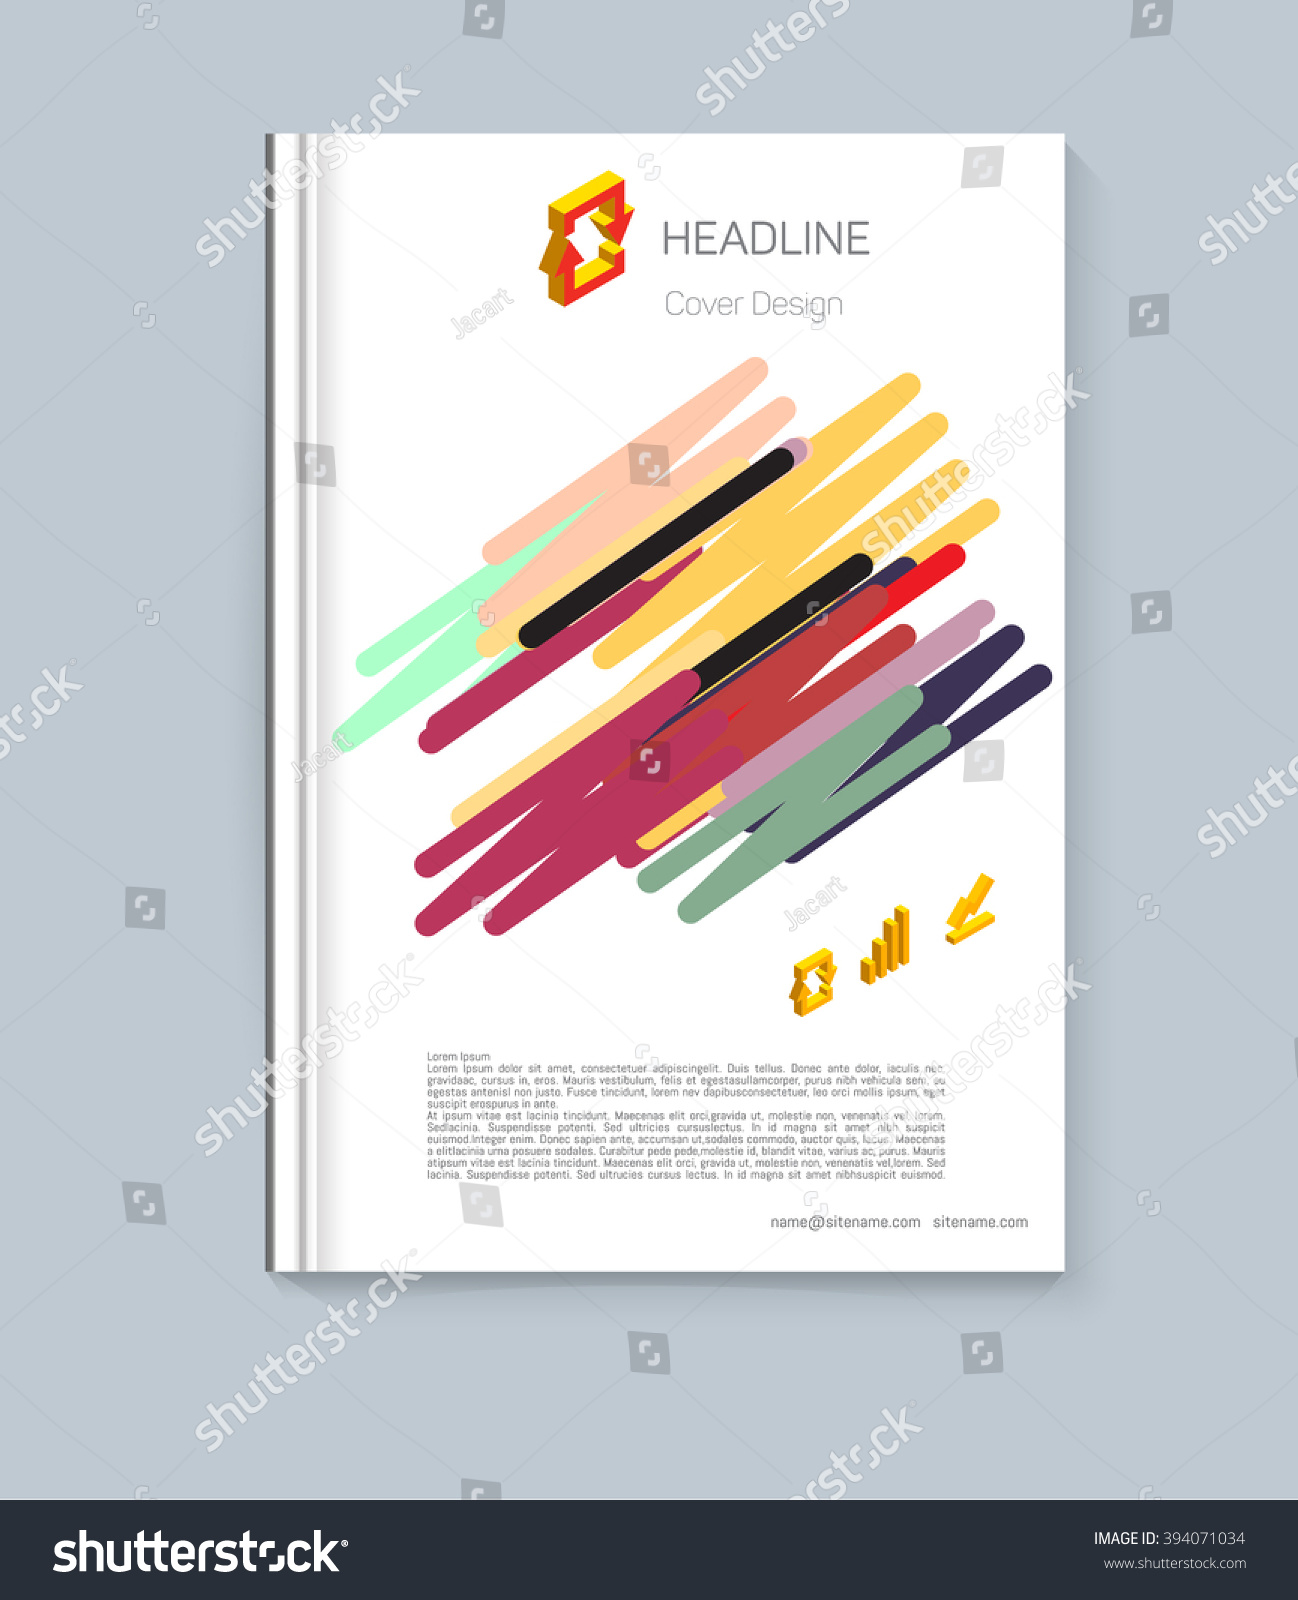 Exercise Book Cover Design : Exercise book cover layout design colored stock vector